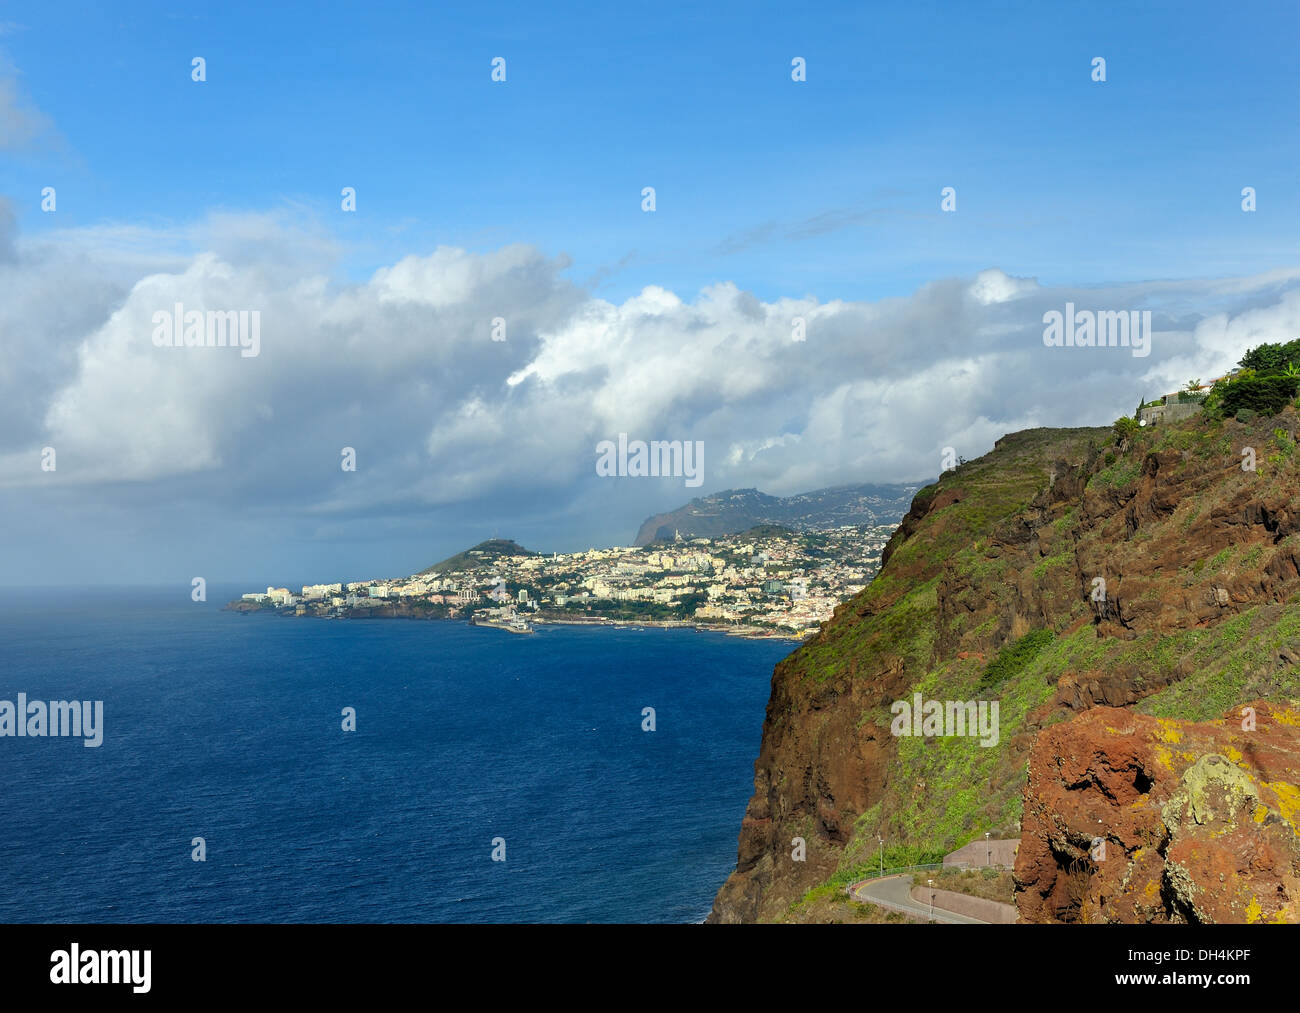 The island of Madeira with the capital city Funchal in the distance - Stock Image